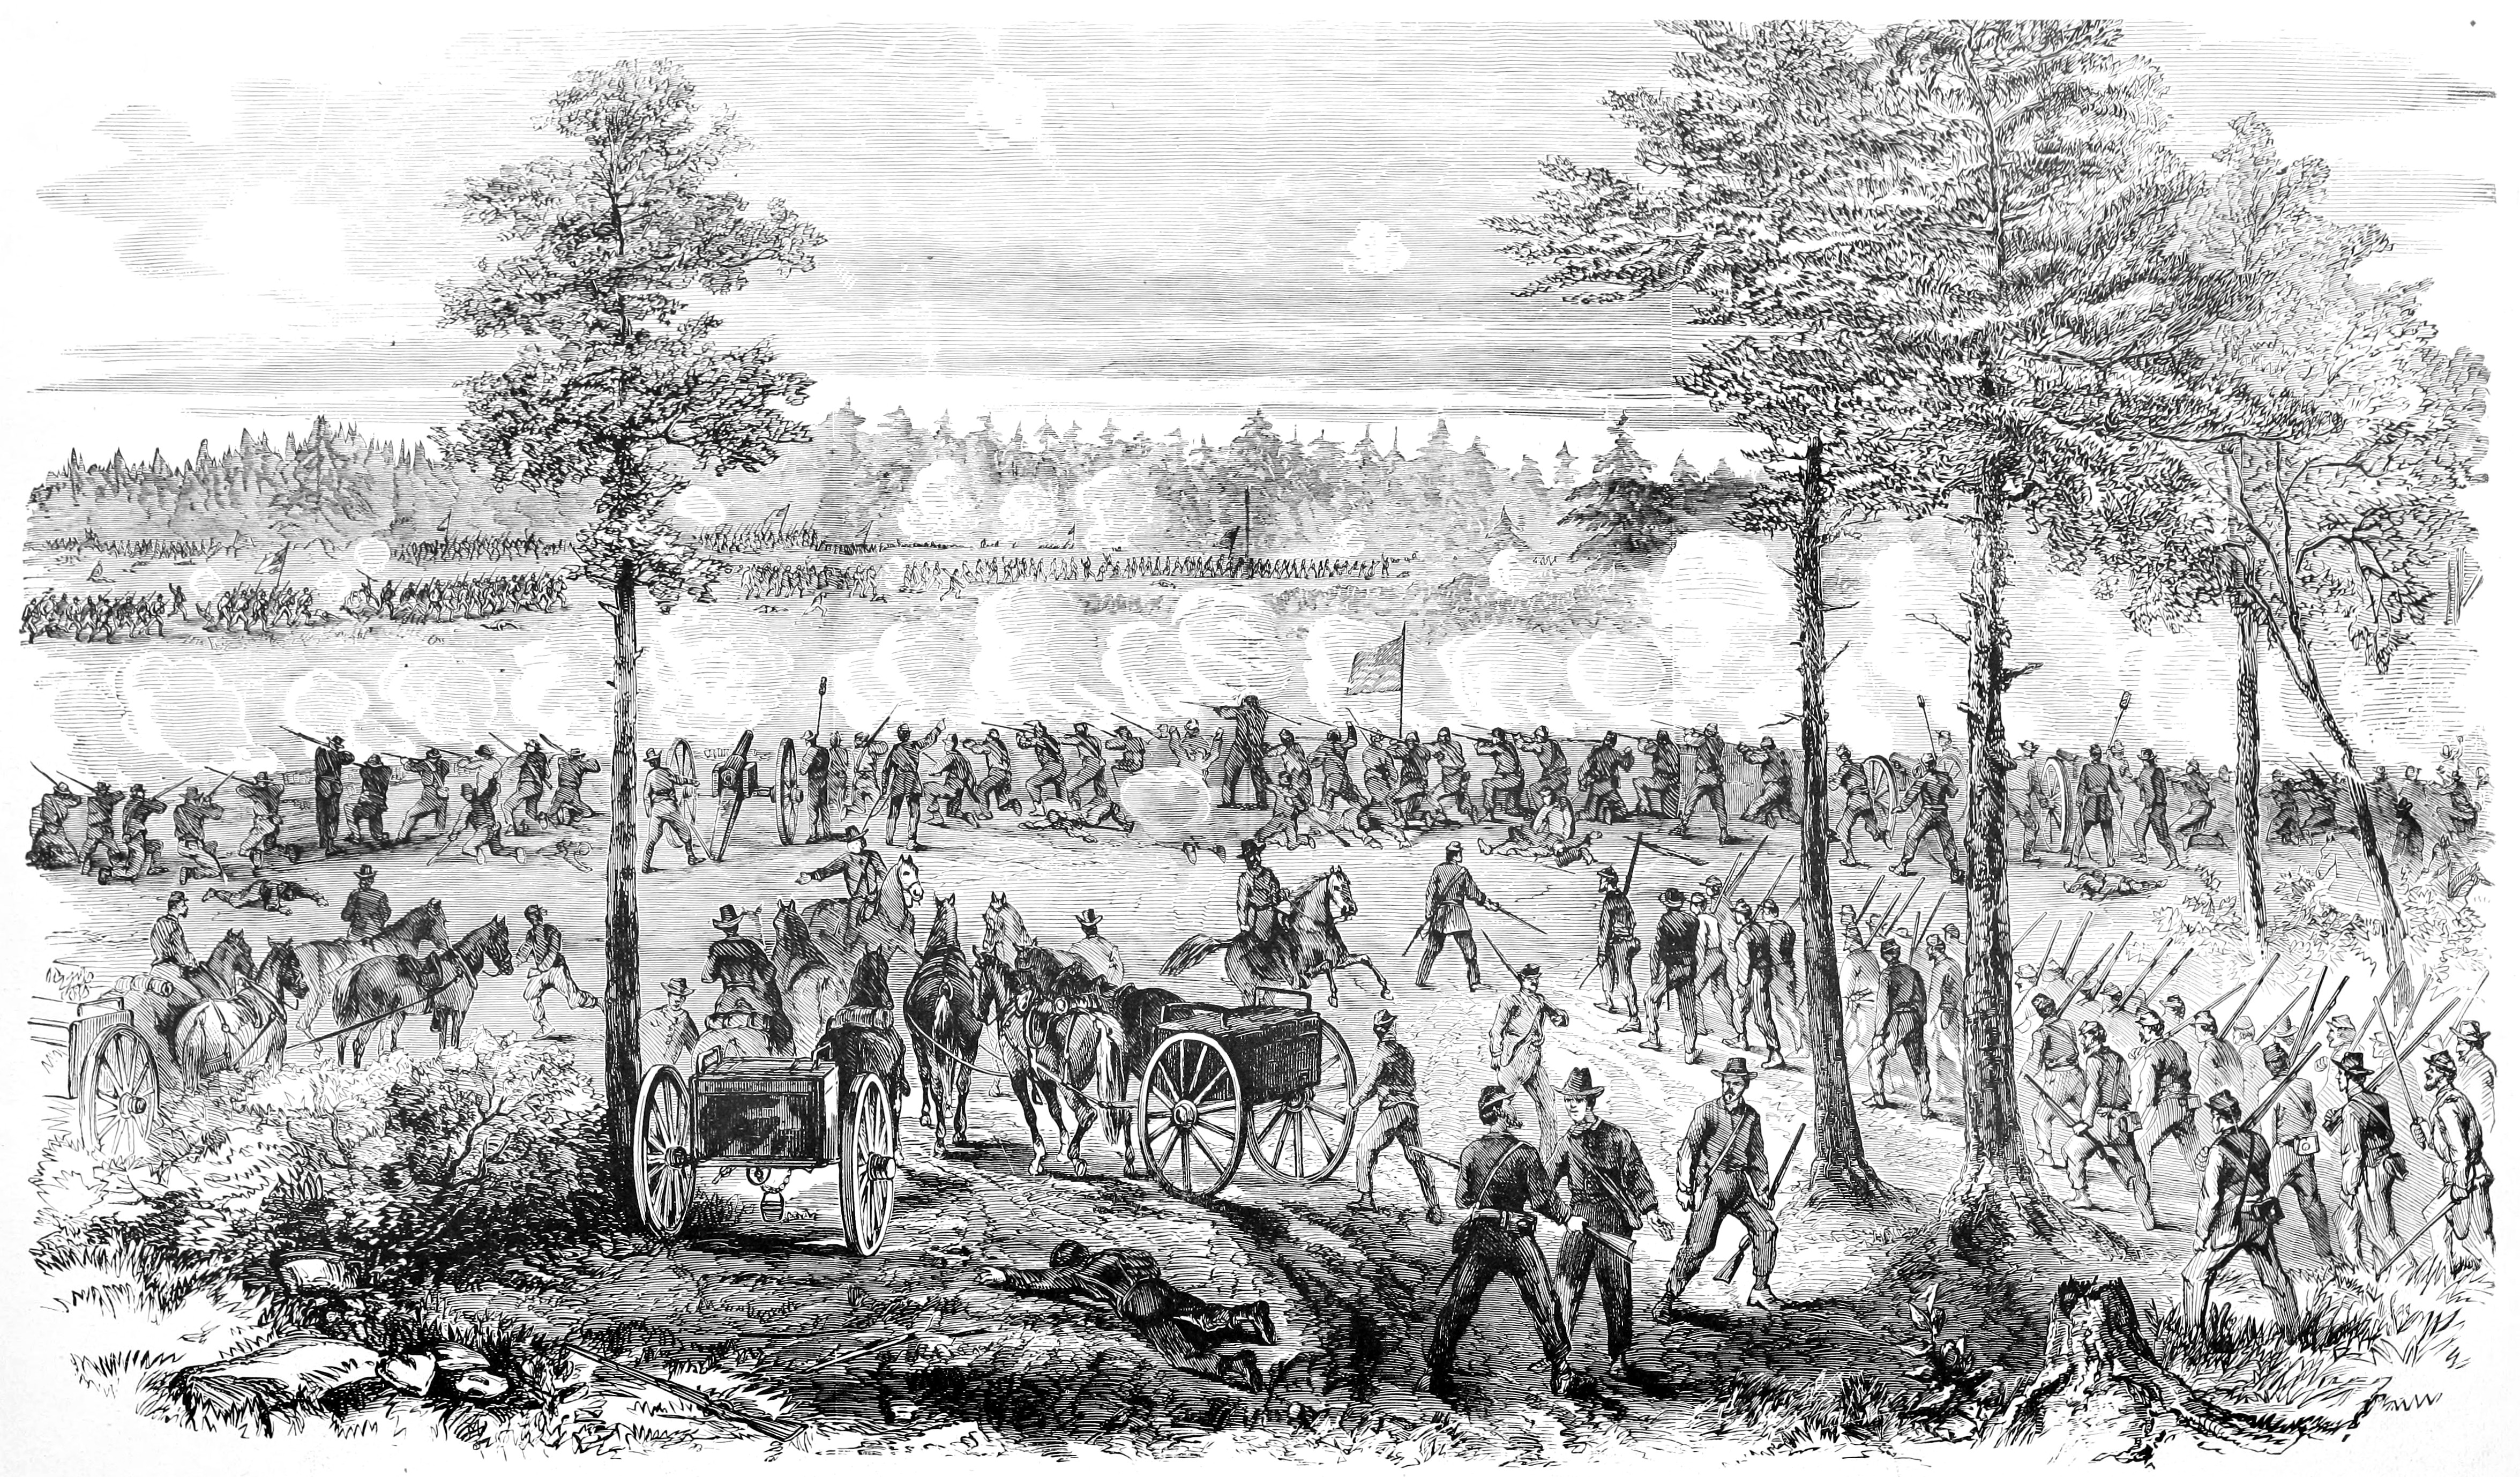 The Second Battle of Ream's Station as depicted in Frank Leslie's Scenes and Portraits of the Civil War (Frank Leslie)